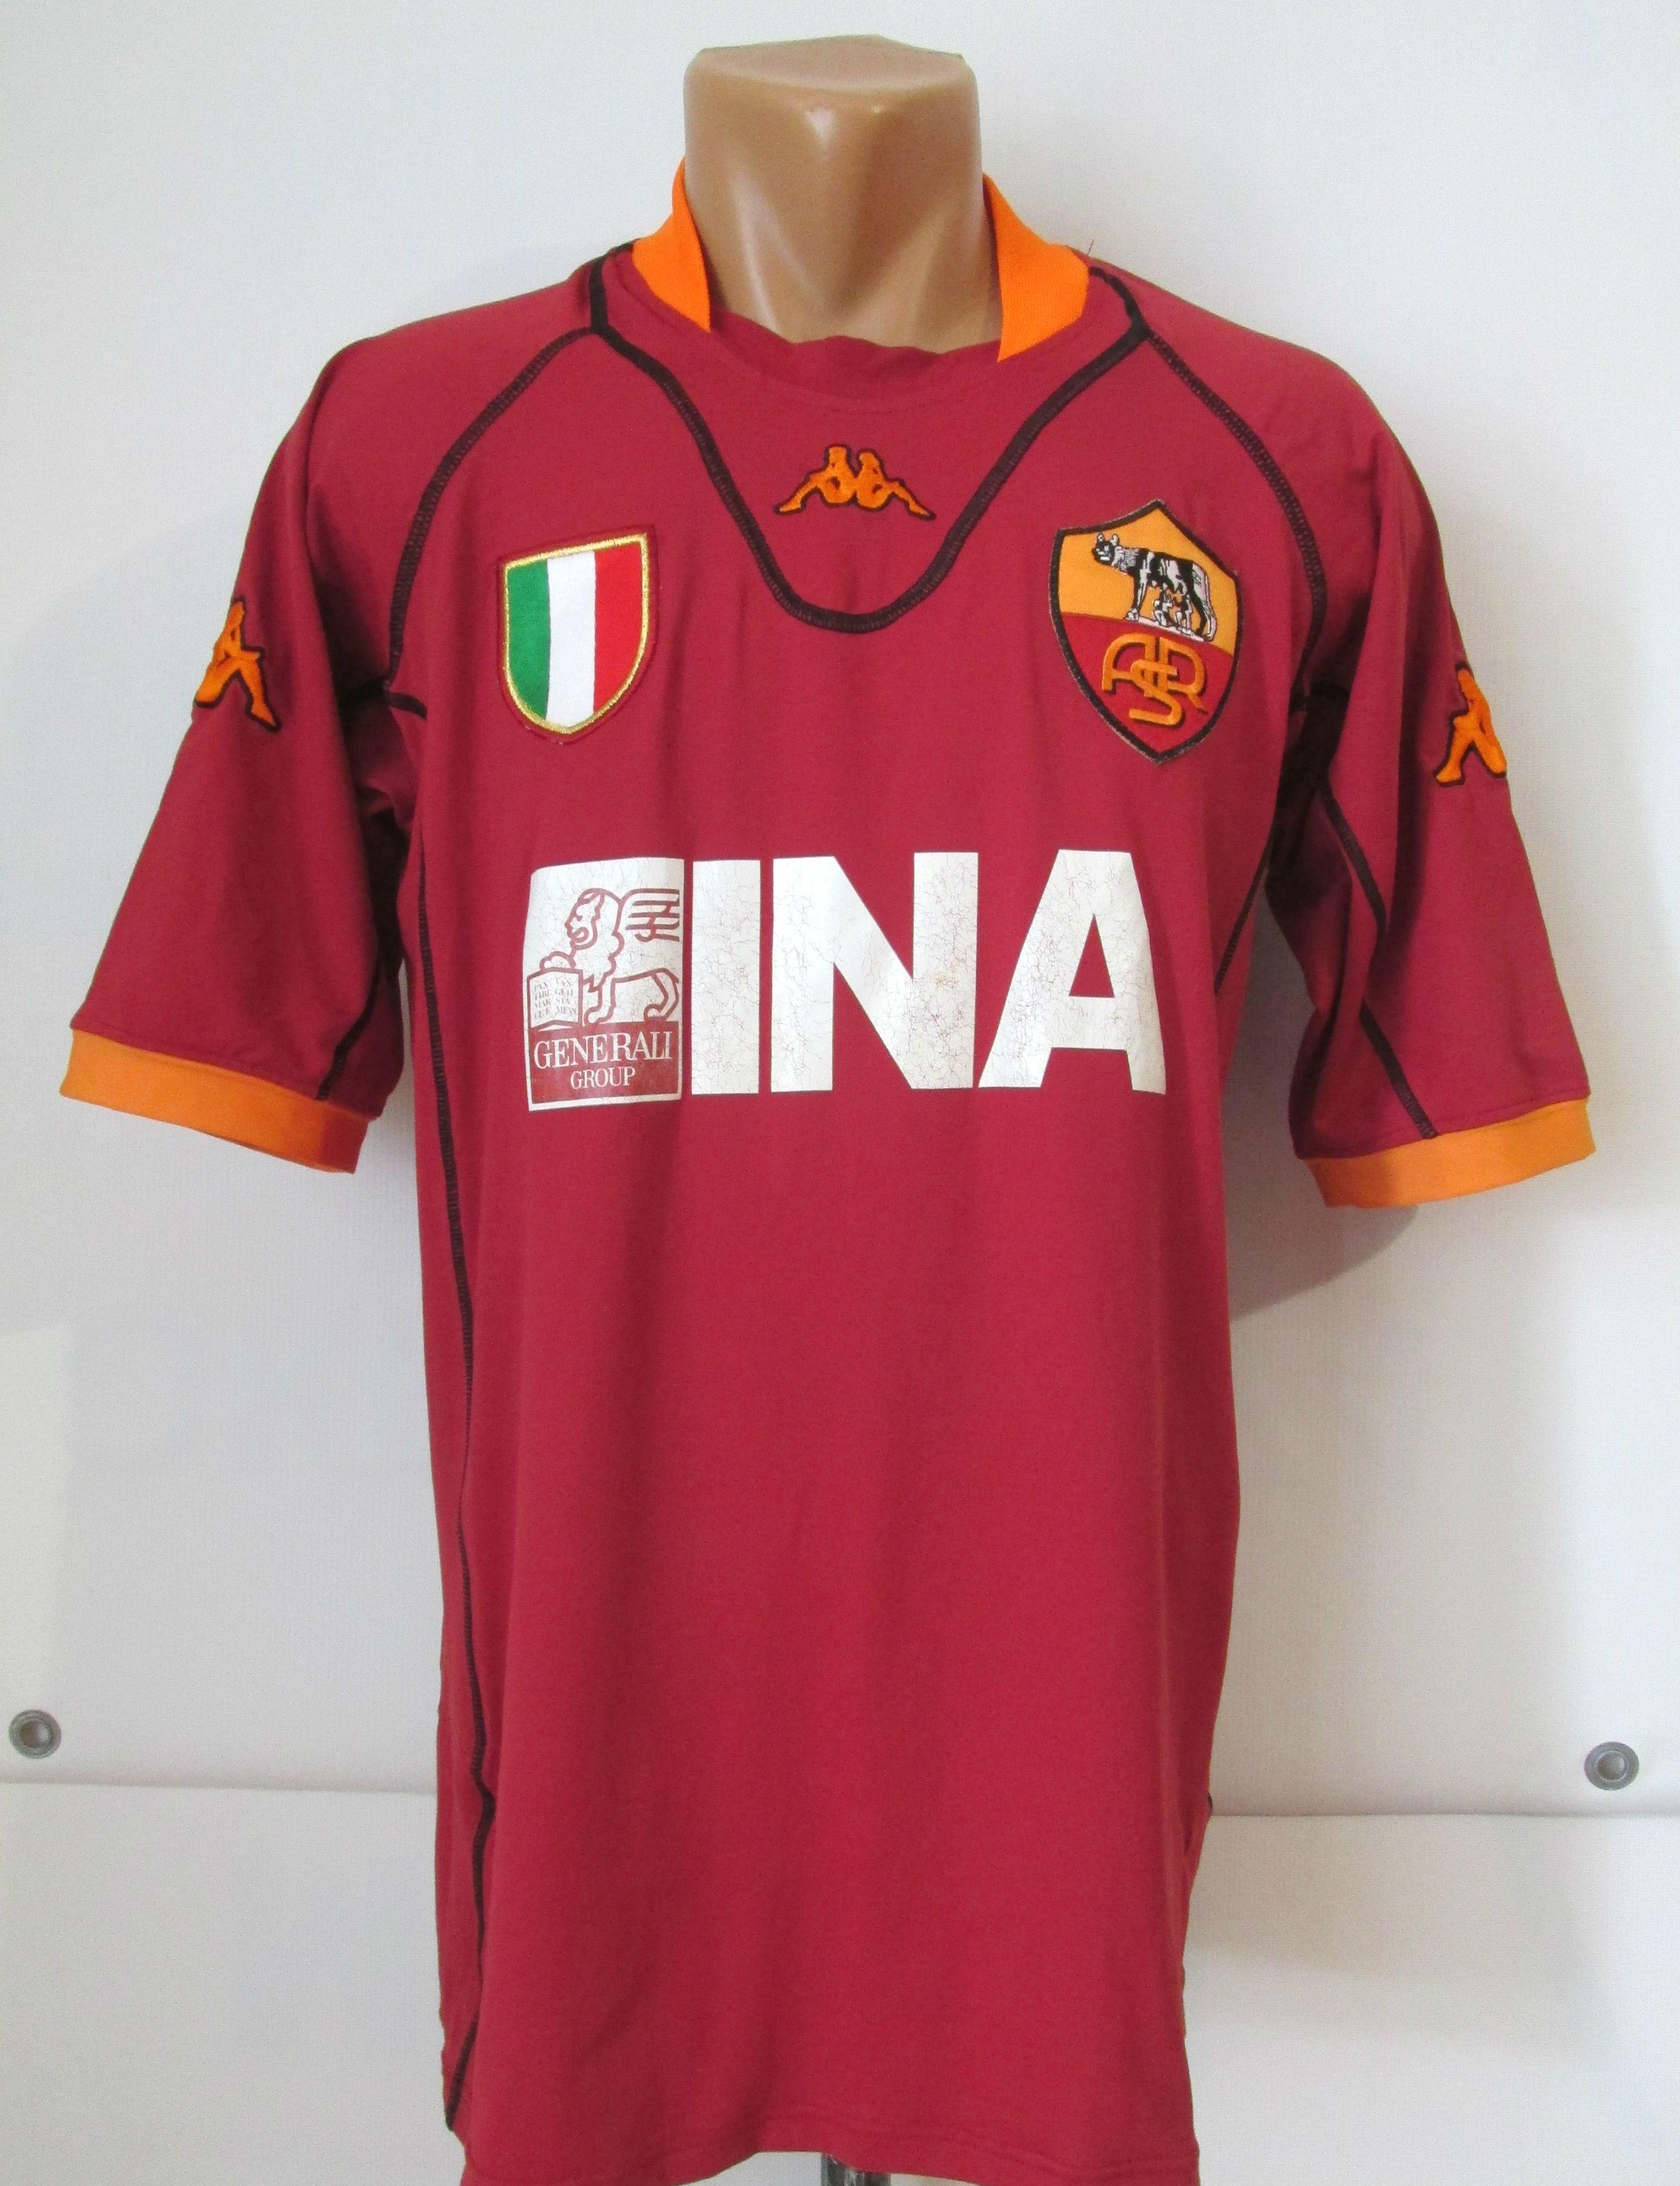 f8c724acce AS Roma 2001/2002 home football shirt by Kappa ASR calcio Italy SerieA soccer  jersey vintage giallorossi Rome #roma #asroma #kappa #calcio #asr  #giallorossi ...